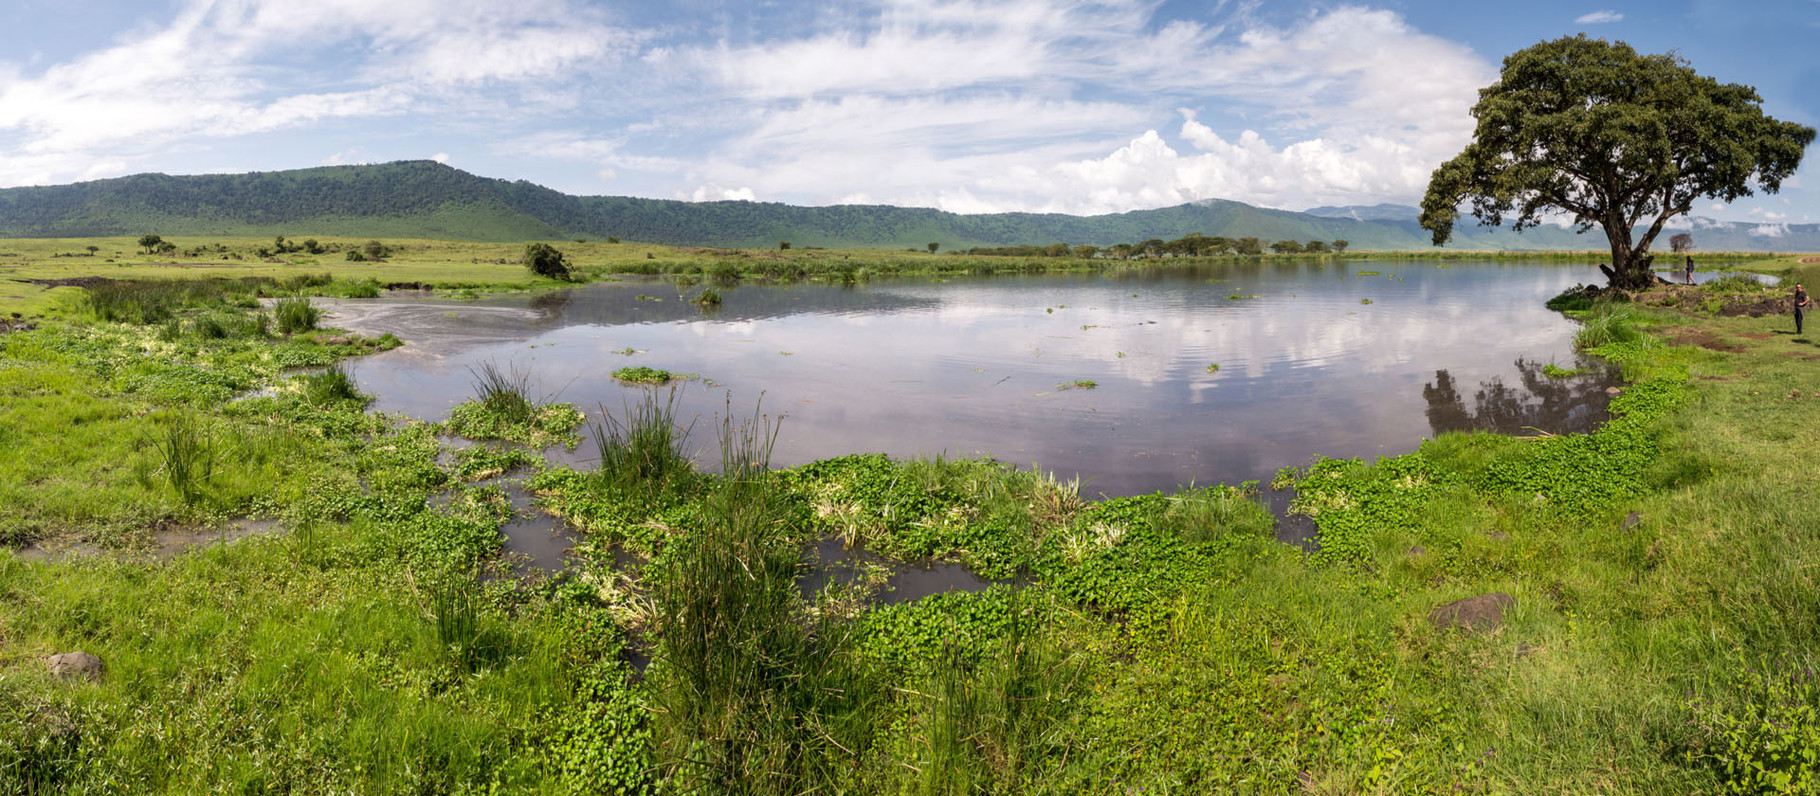 Small lake in Ngorongoro crater, 2015